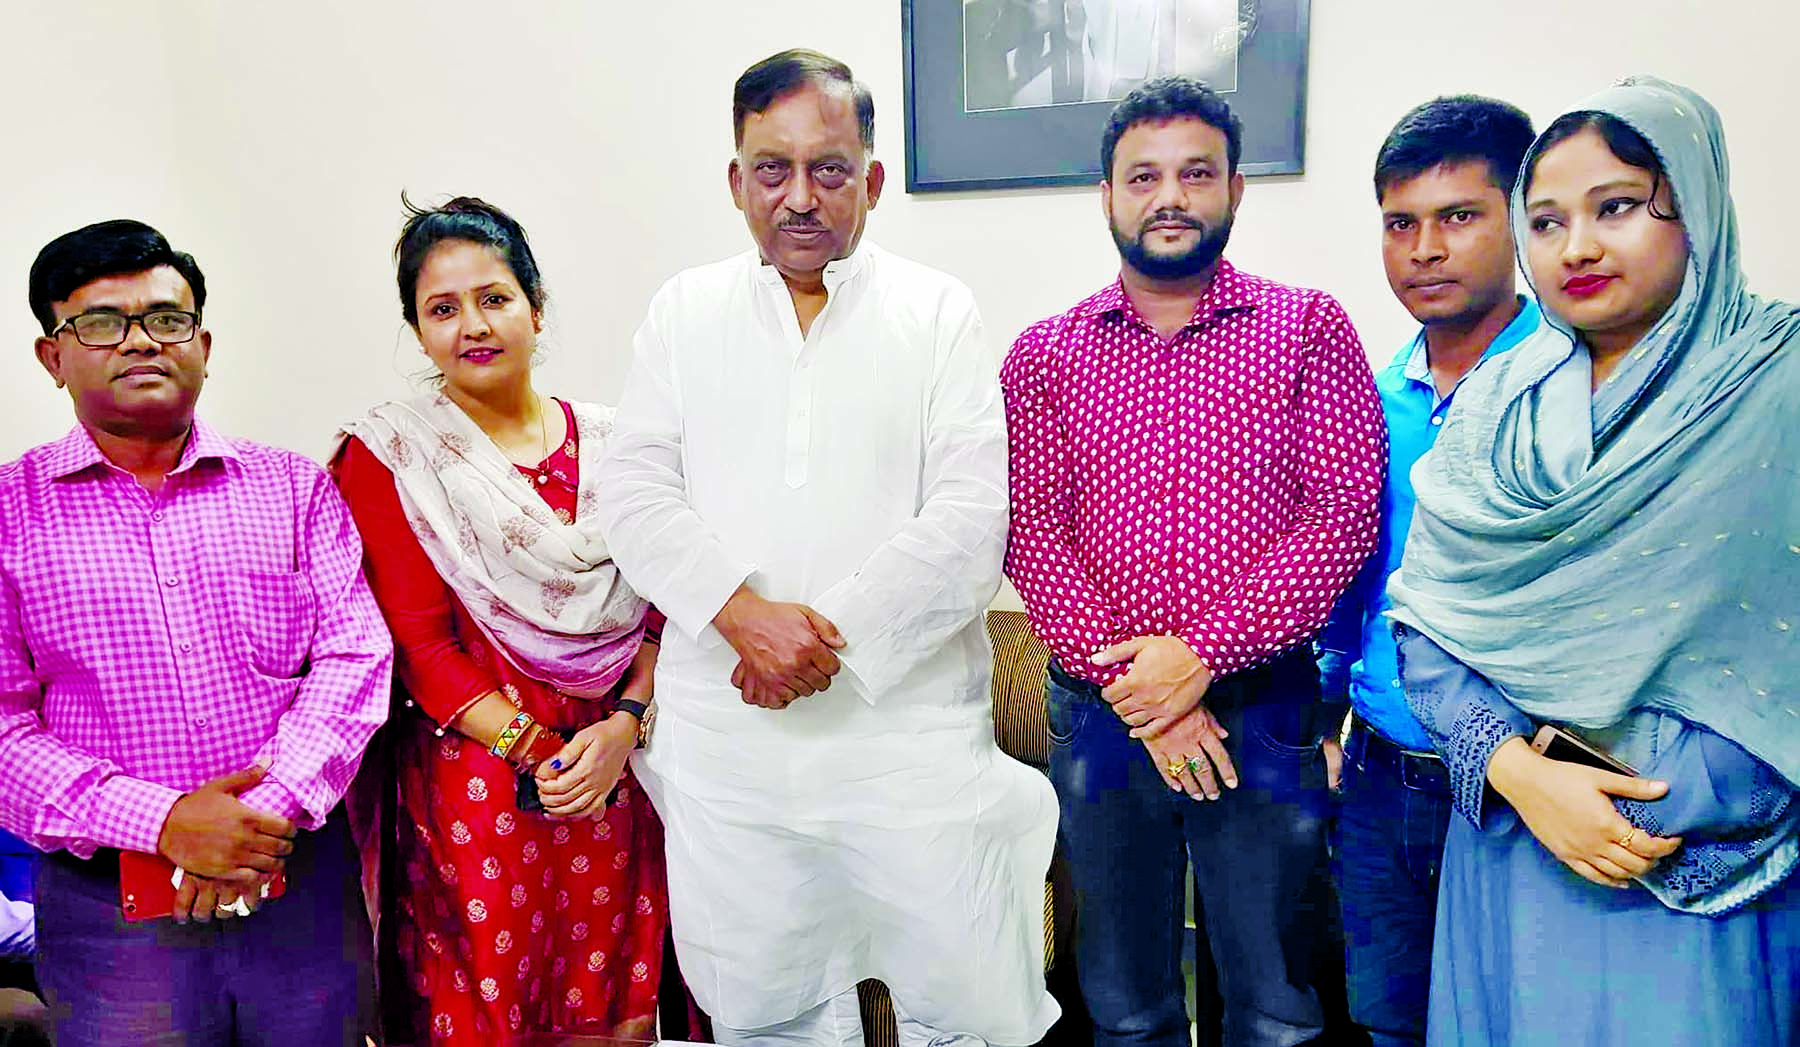 Chairman of Human Rights Society Anwar-e-Taslima along with its five members paid a courtesy call on Home Minister Asaduzzaman Khan Kamal at the latter's personal office in the city's Dhanmondi on Monday.